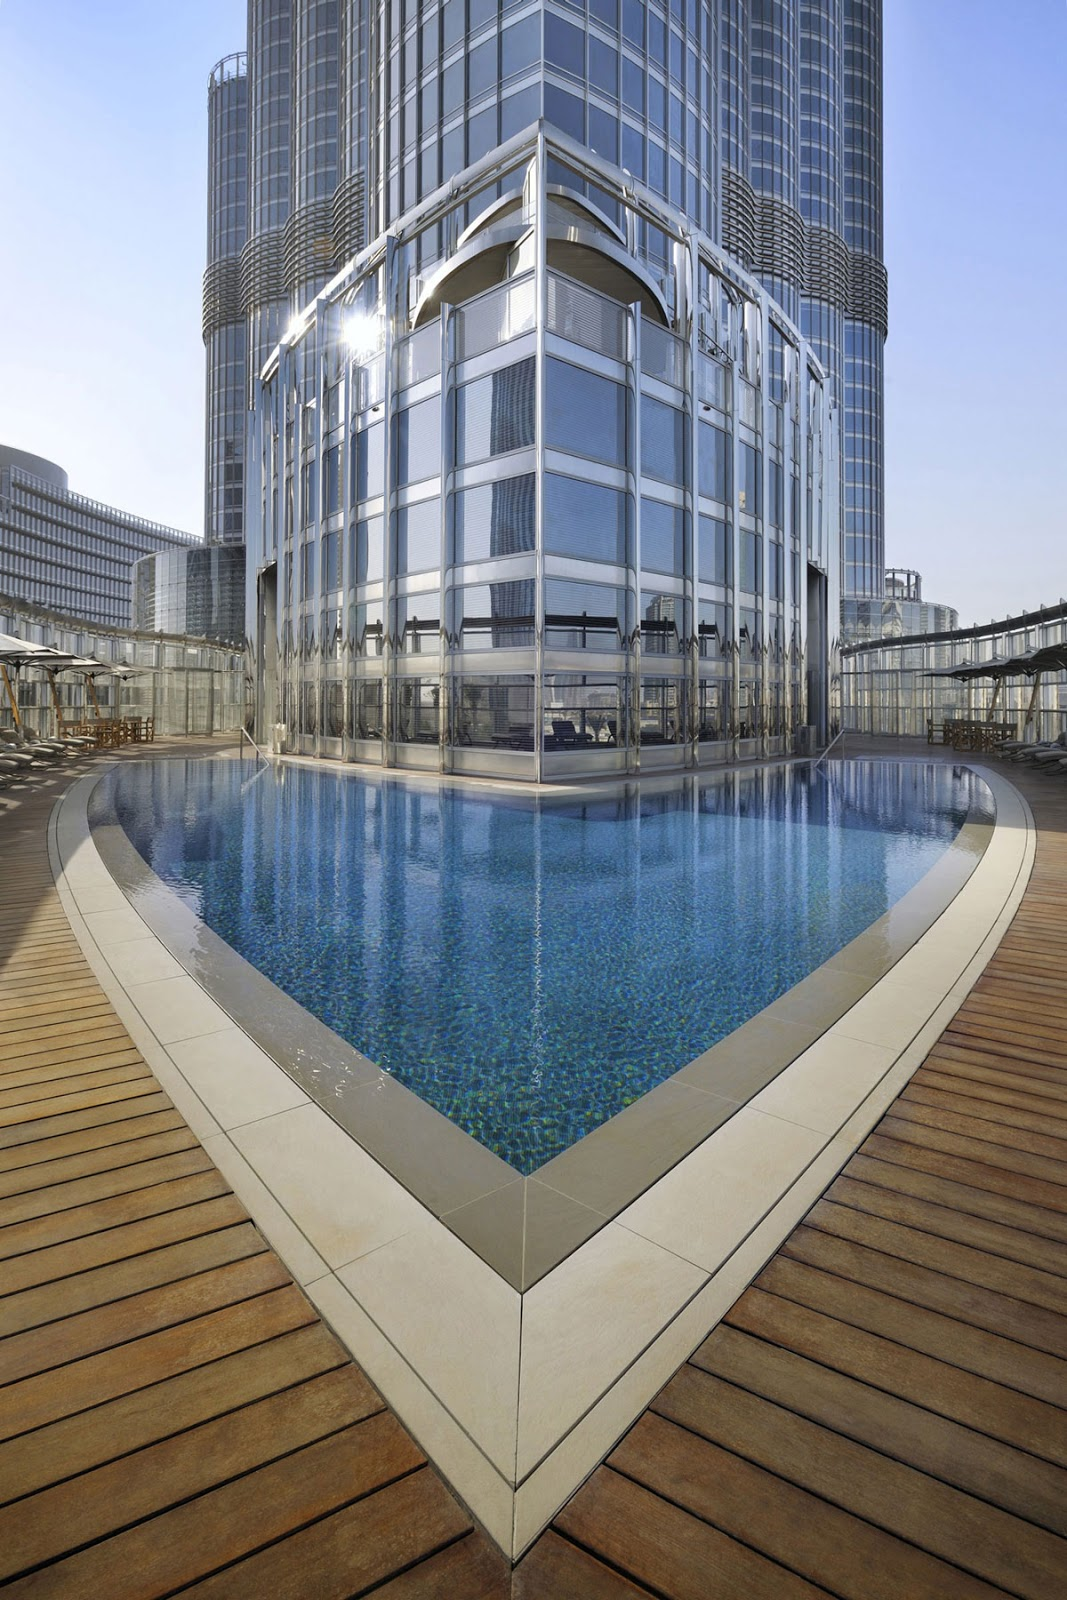 Passion for luxury armani hotel dubai for Luxury hotels in dubai